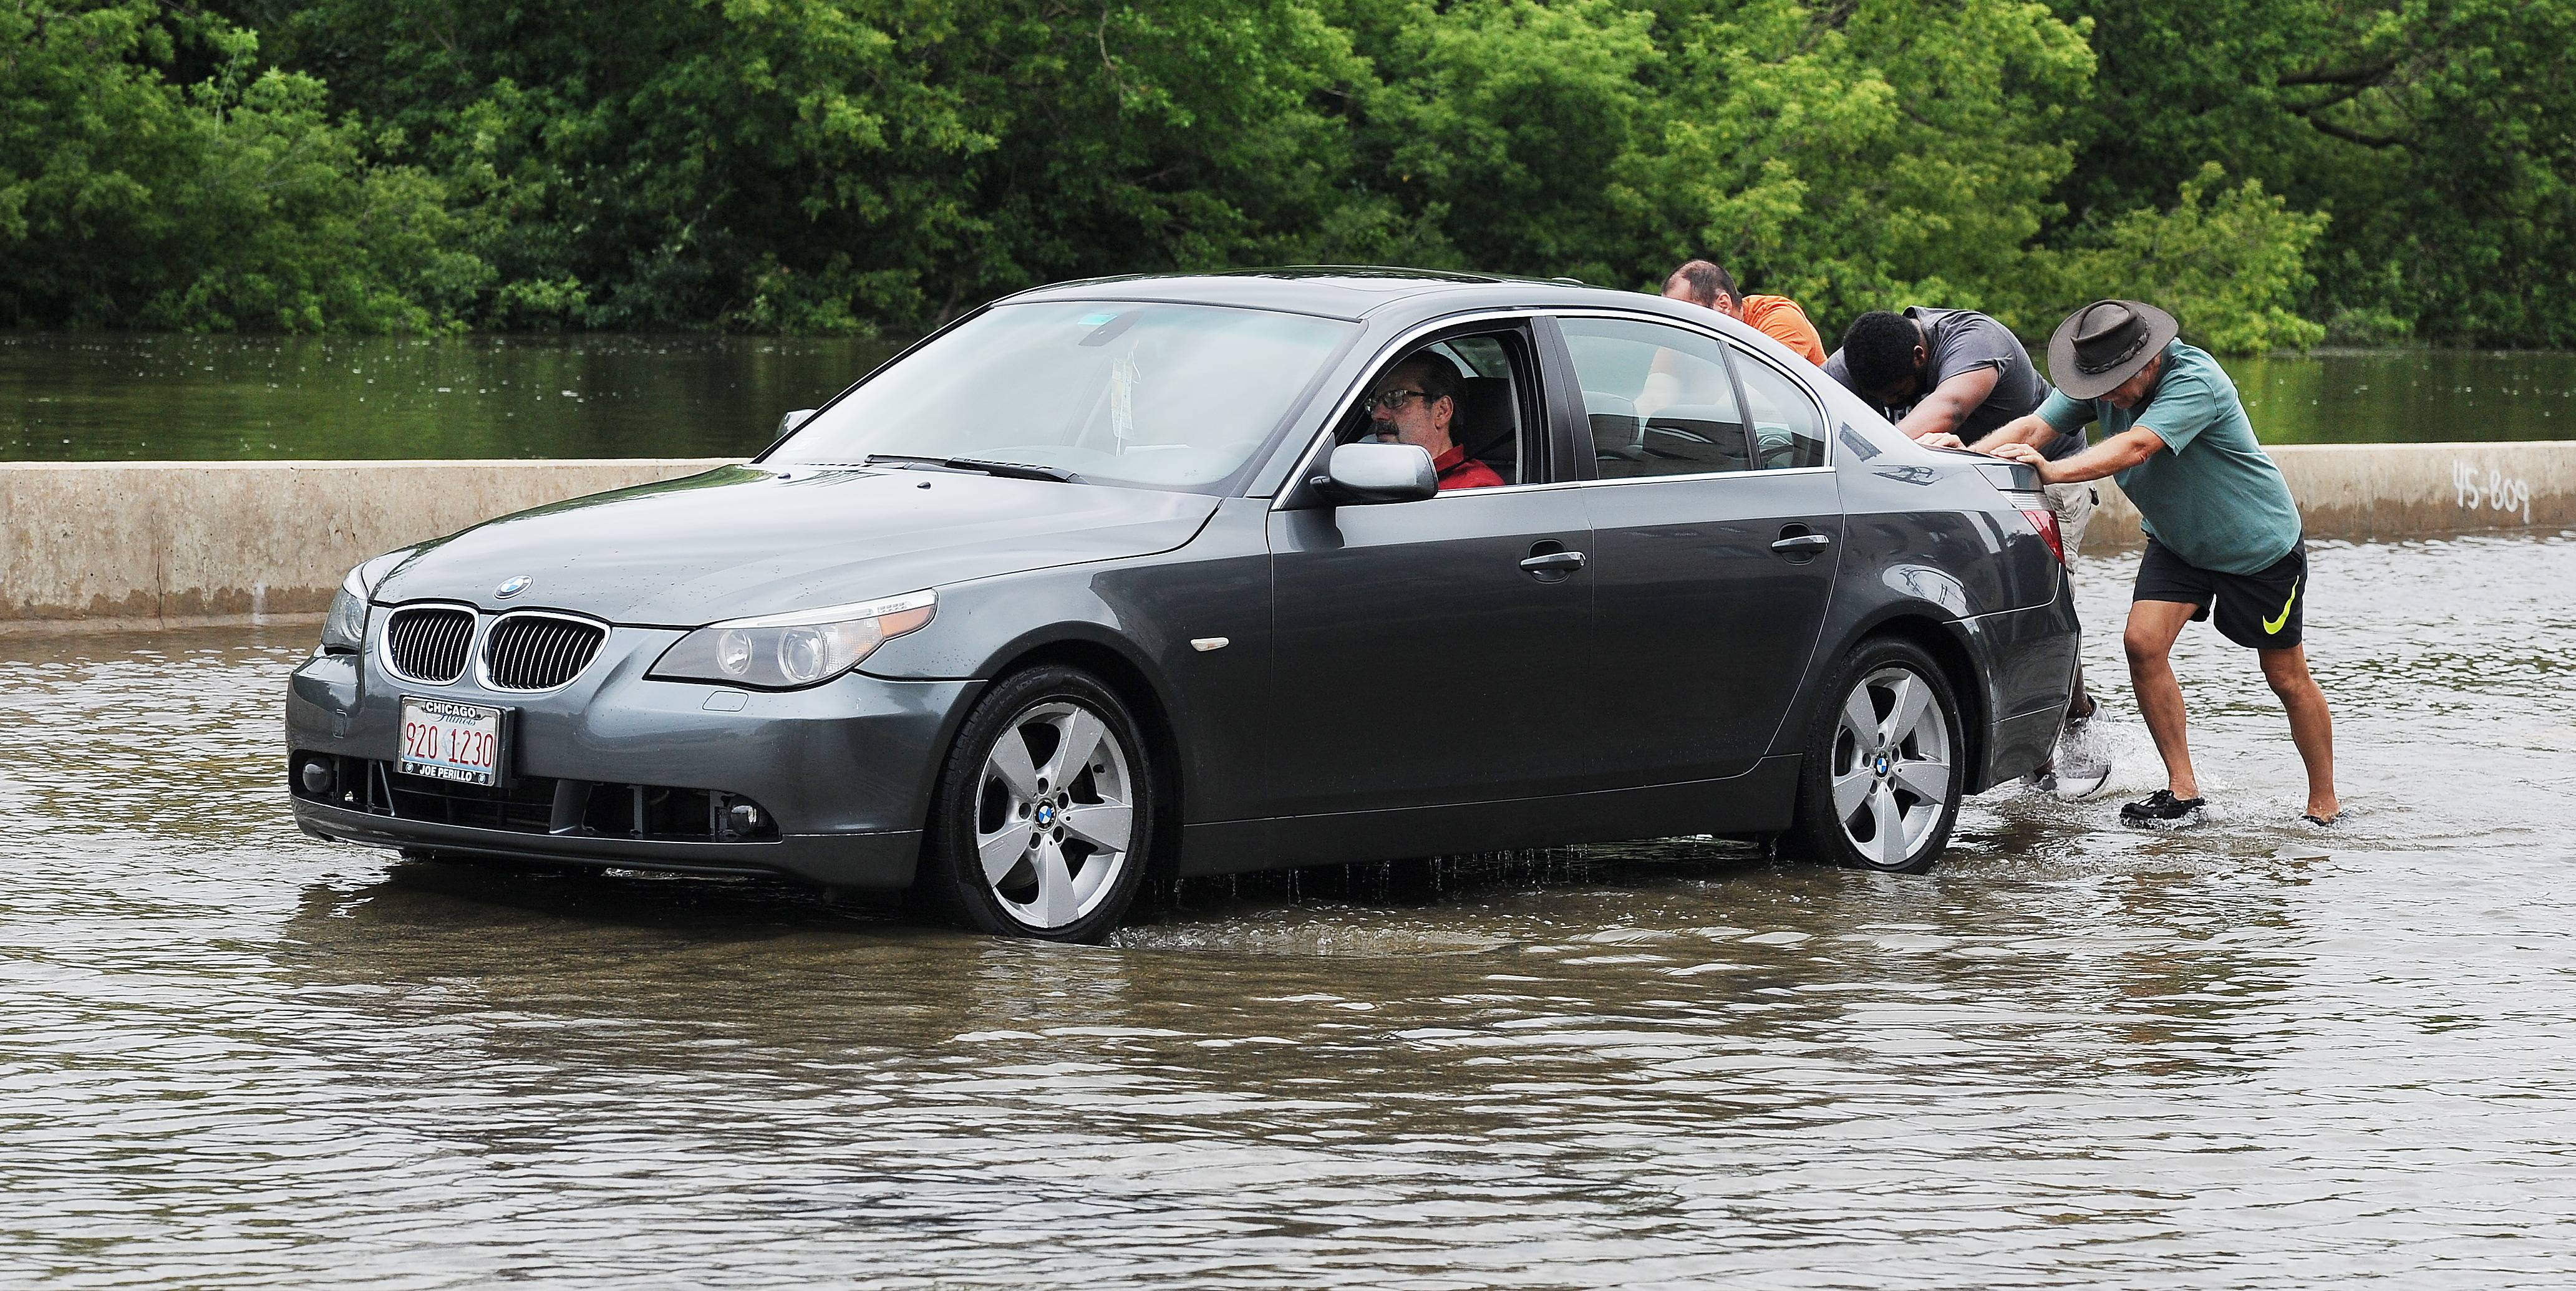 Galen Hiestand as well as Jacob and Mike Herz lend a helping hand to push the stalled car of Tom Bonanno out of the water on River Road in Des Plaines after he drove through it trying to get to his son's house.